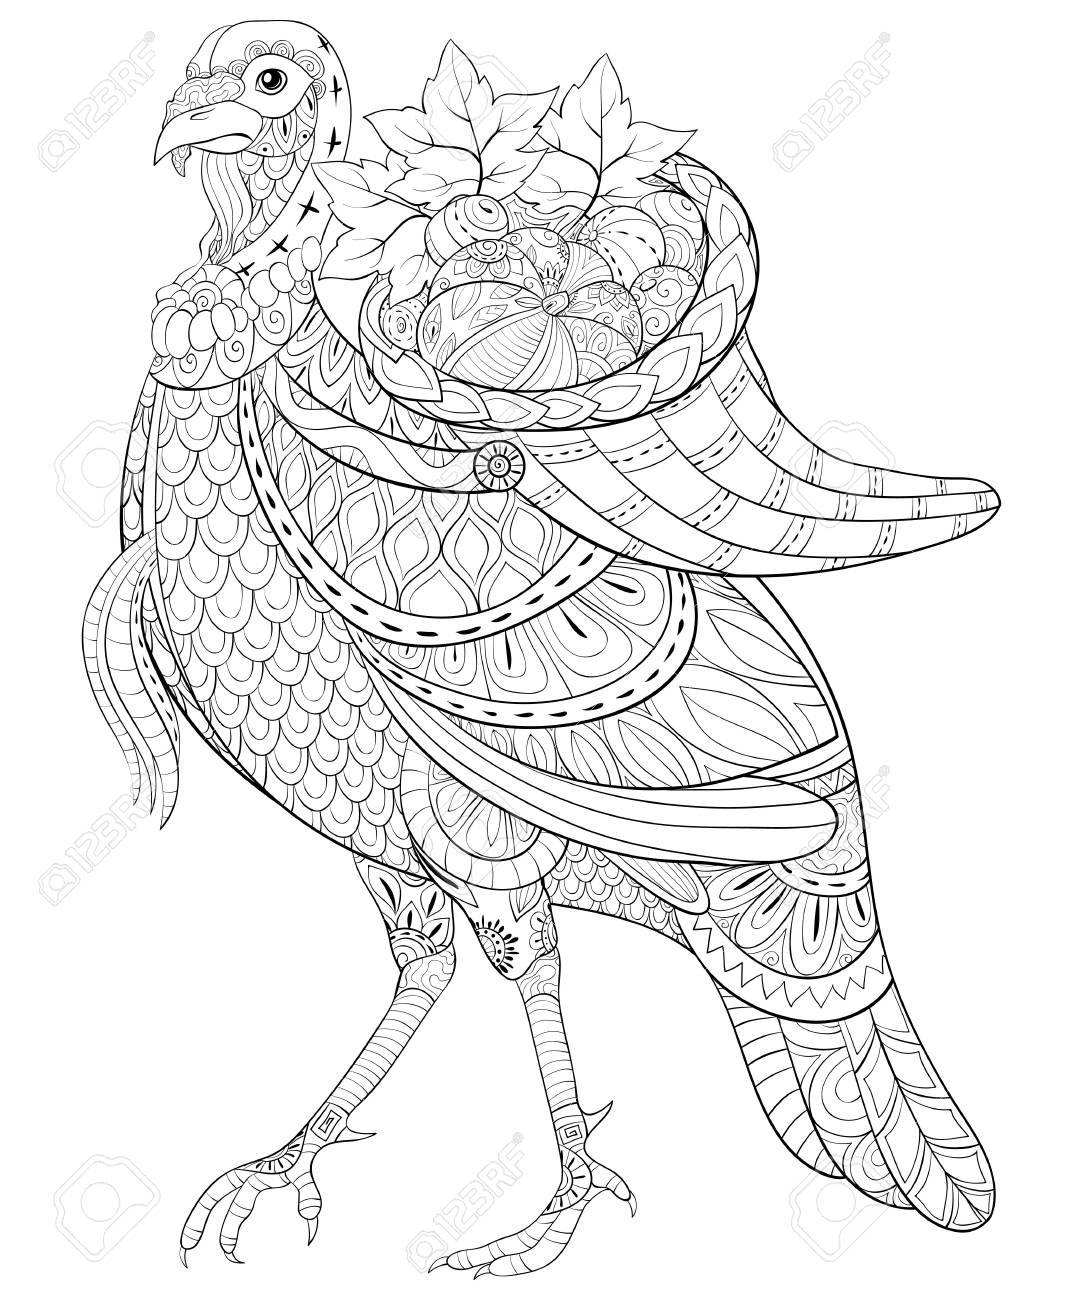 A cute turkey with a basket in his back full of fruits with ornaments image for relaxing activity.A coloring book,page for adults.Zen art style illustration for print.Poster design. - 126684325